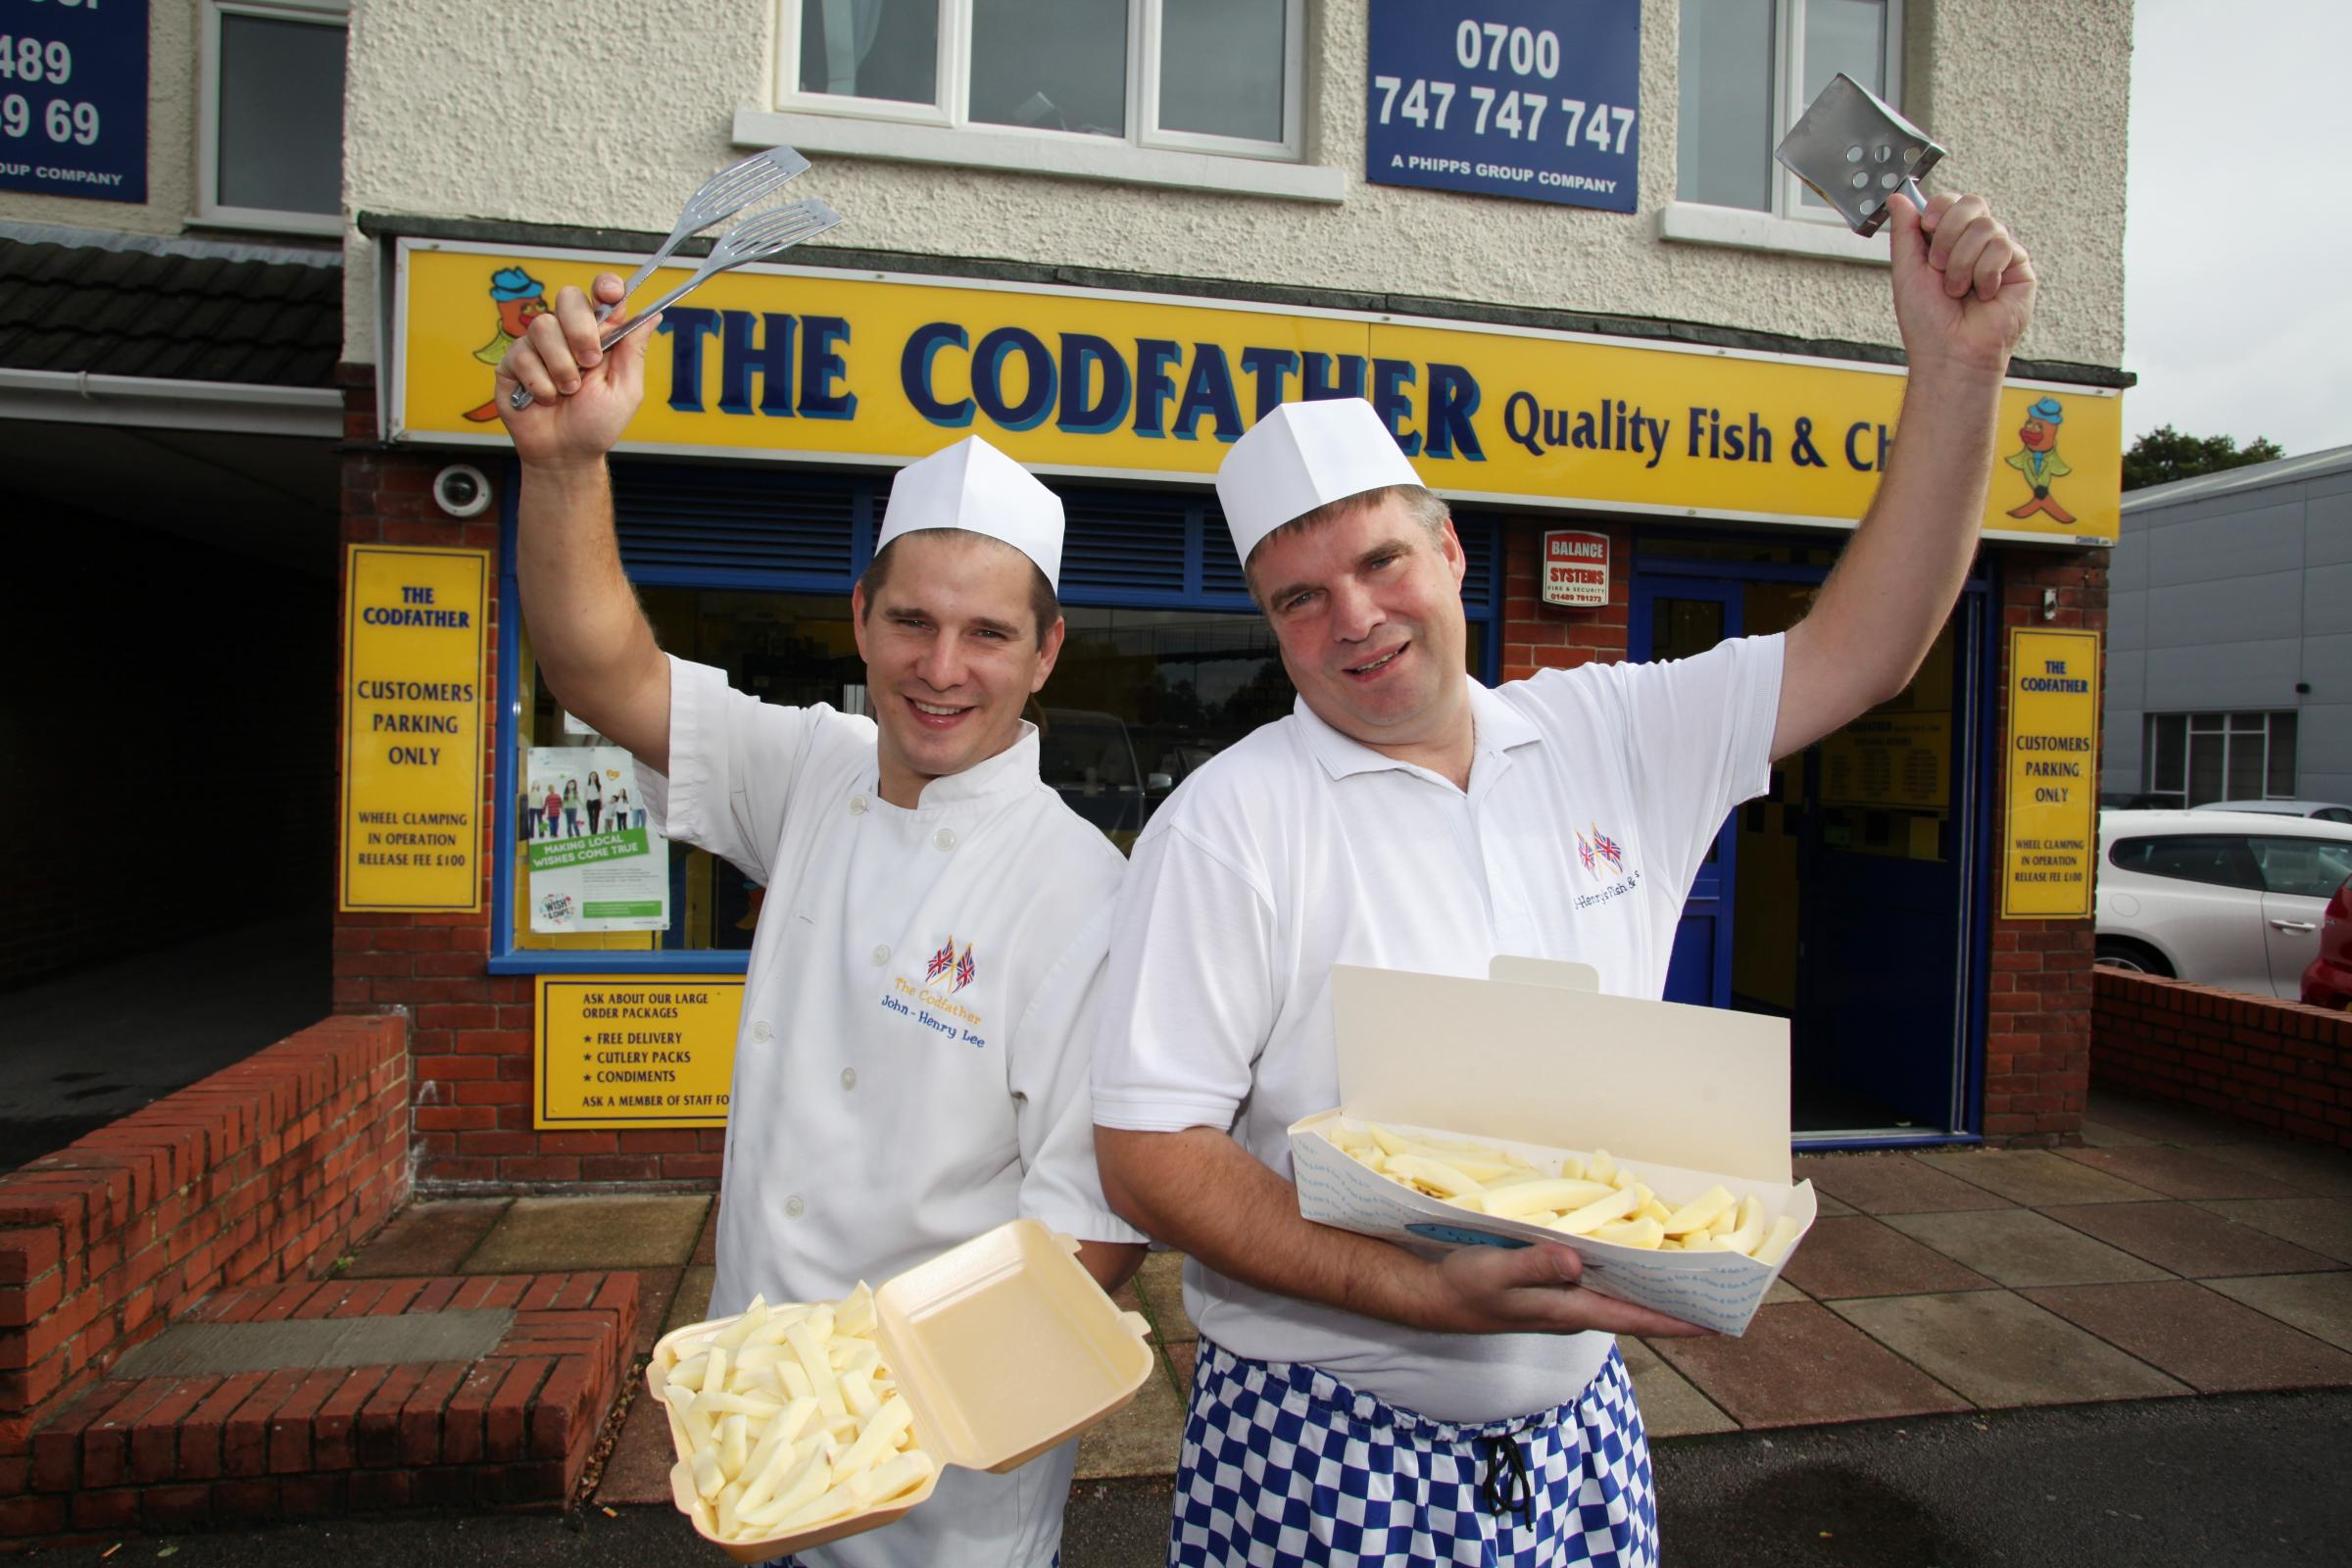 Best Fry Fish and Chips earns Fish and Chip Quality Award | Daily Echo